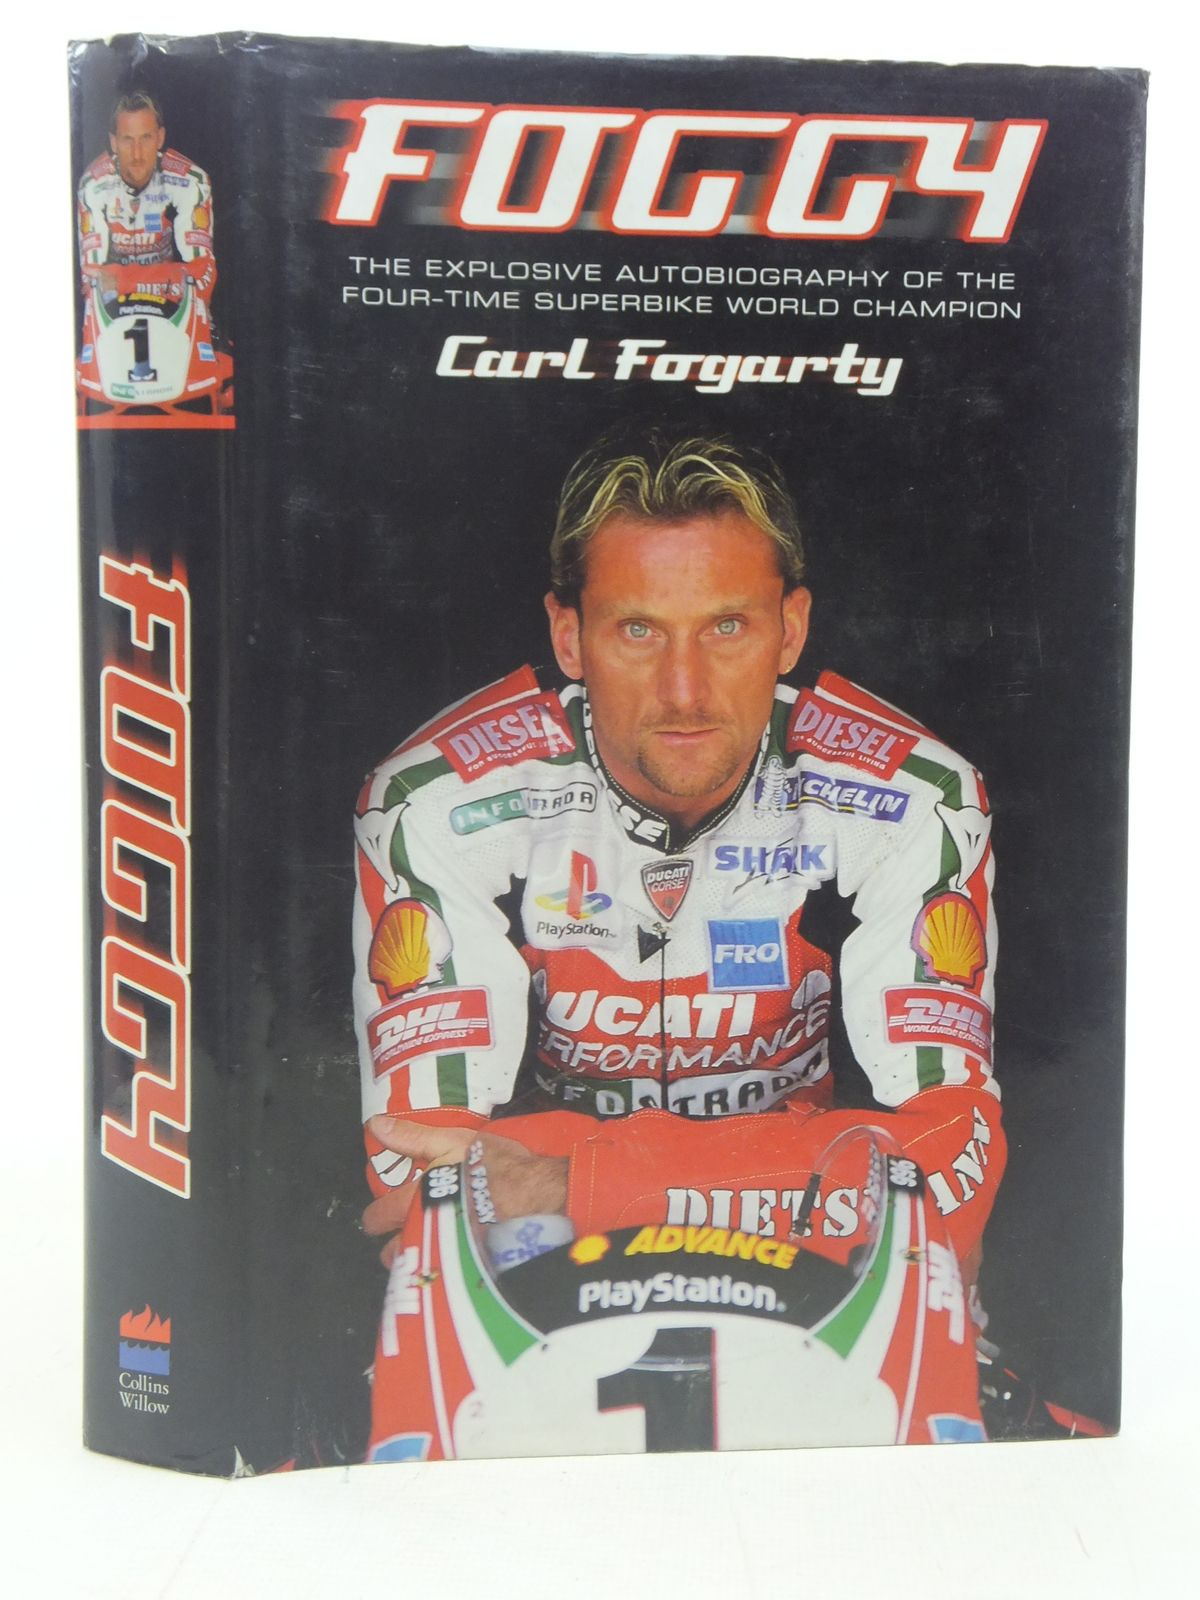 Photo of FOGGY THE EXPLOSIVE AUTOBIOGRAPHY OF THE FOUR-TIME SUPERBIKE WORLD CHAMPION written by Fogarty, Carl<br />Bramwell, Neil published by Collins Willow (STOCK CODE: 1606189)  for sale by Stella & Rose's Books